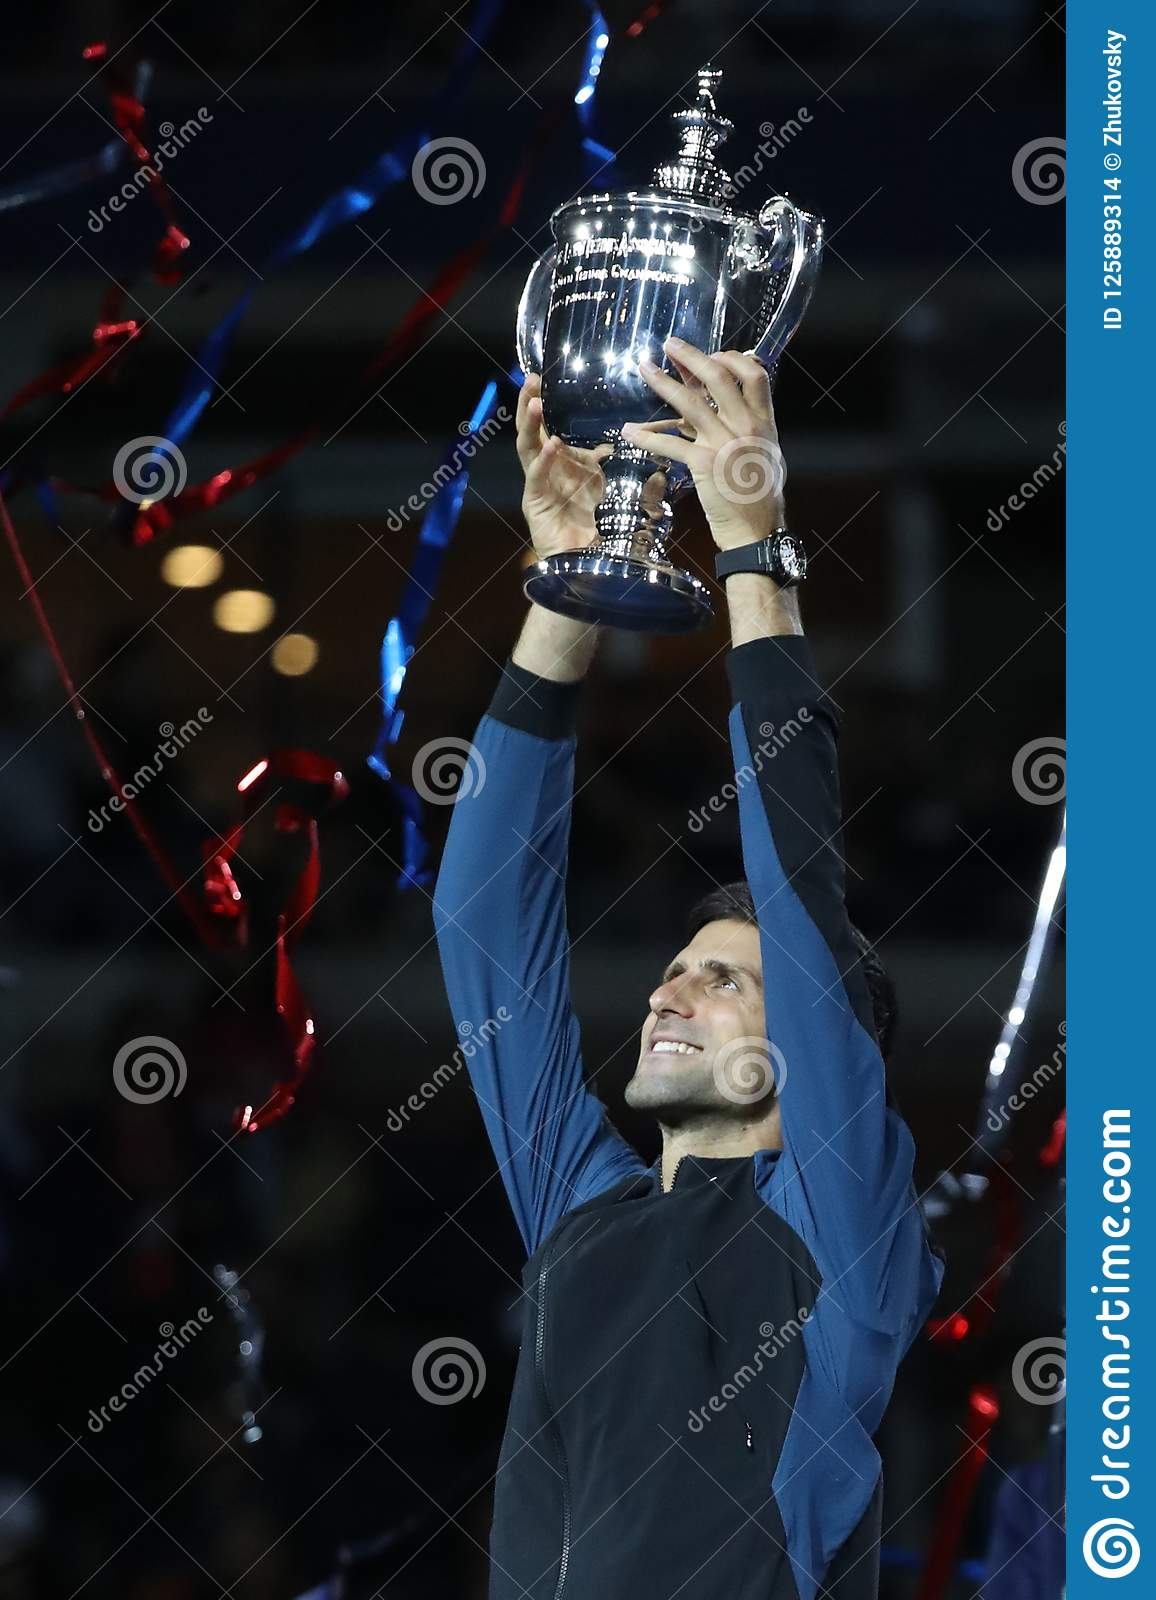 2018 Us Open Champion Novak Djokovic Of Serbia Posing With Us Open Trophy During Trophy Presentation After His Final Match Victory Editorial Stock Image Image Of Lacoste Court 125889314